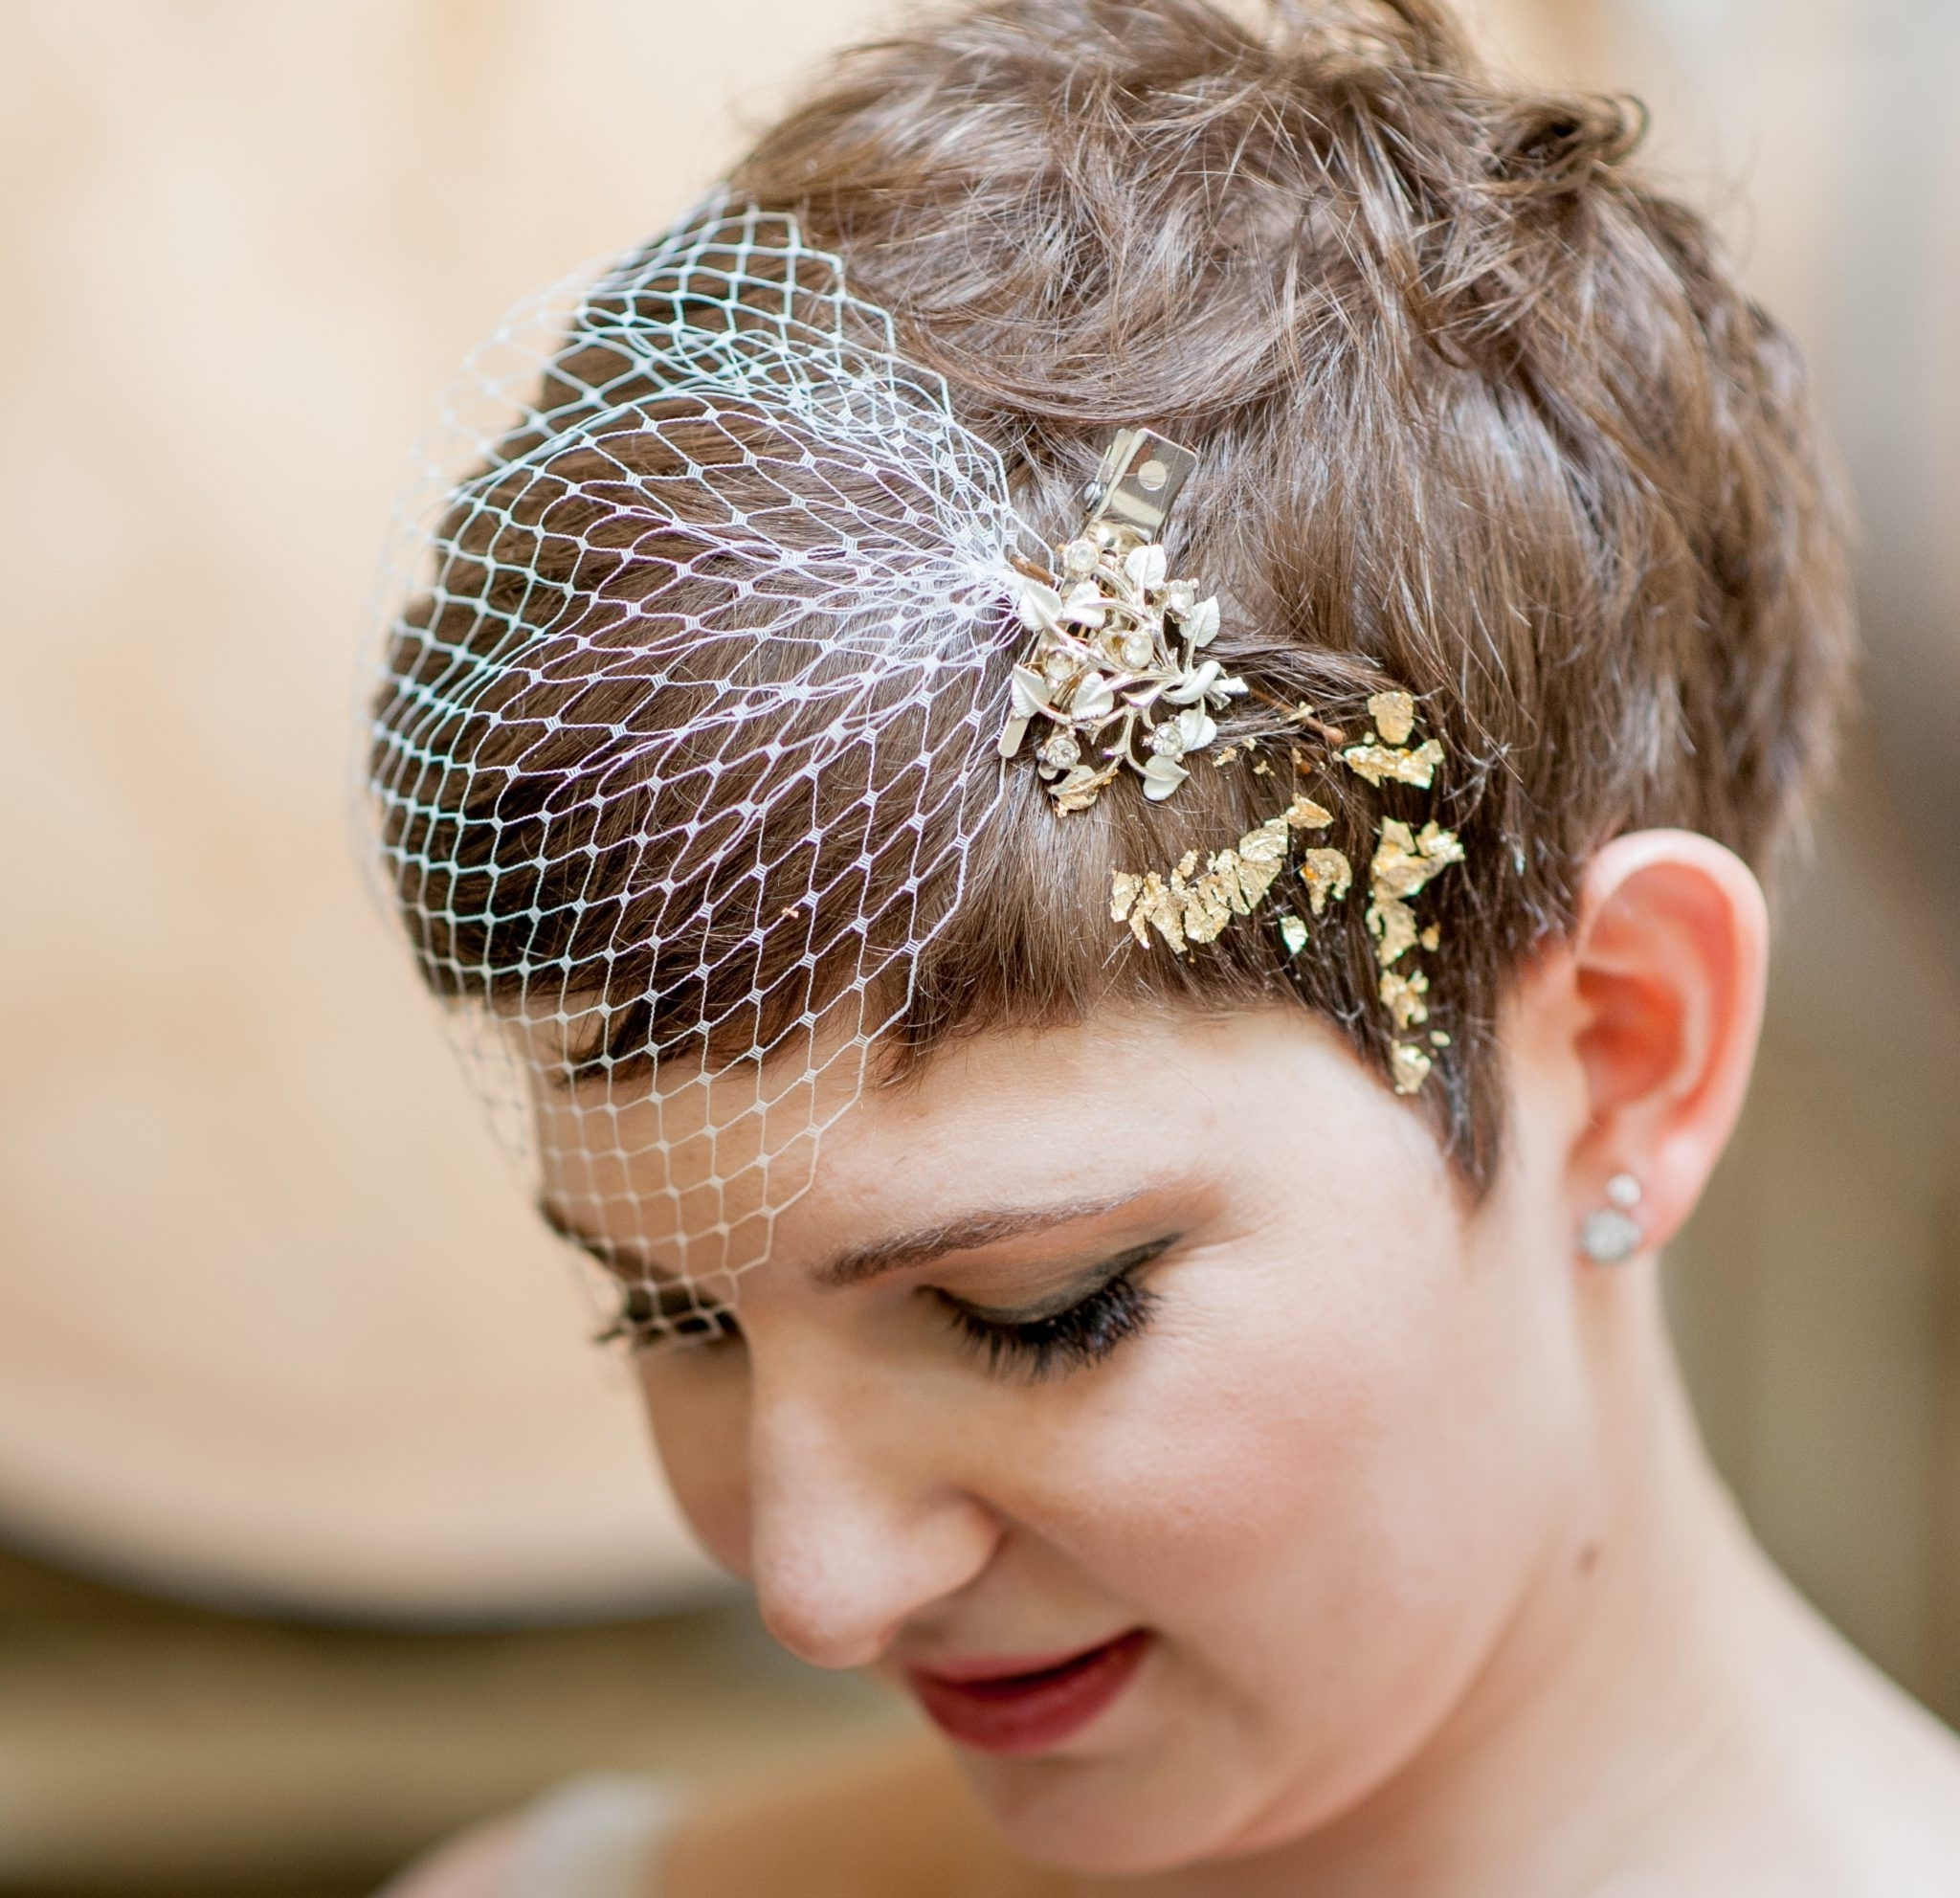 Wedding Hairstyle Brides Pixie Haircut Brown Hair With Veil Inside Popular Wedding Hairstyles For Short Hair And Veil (View 15 of 15)